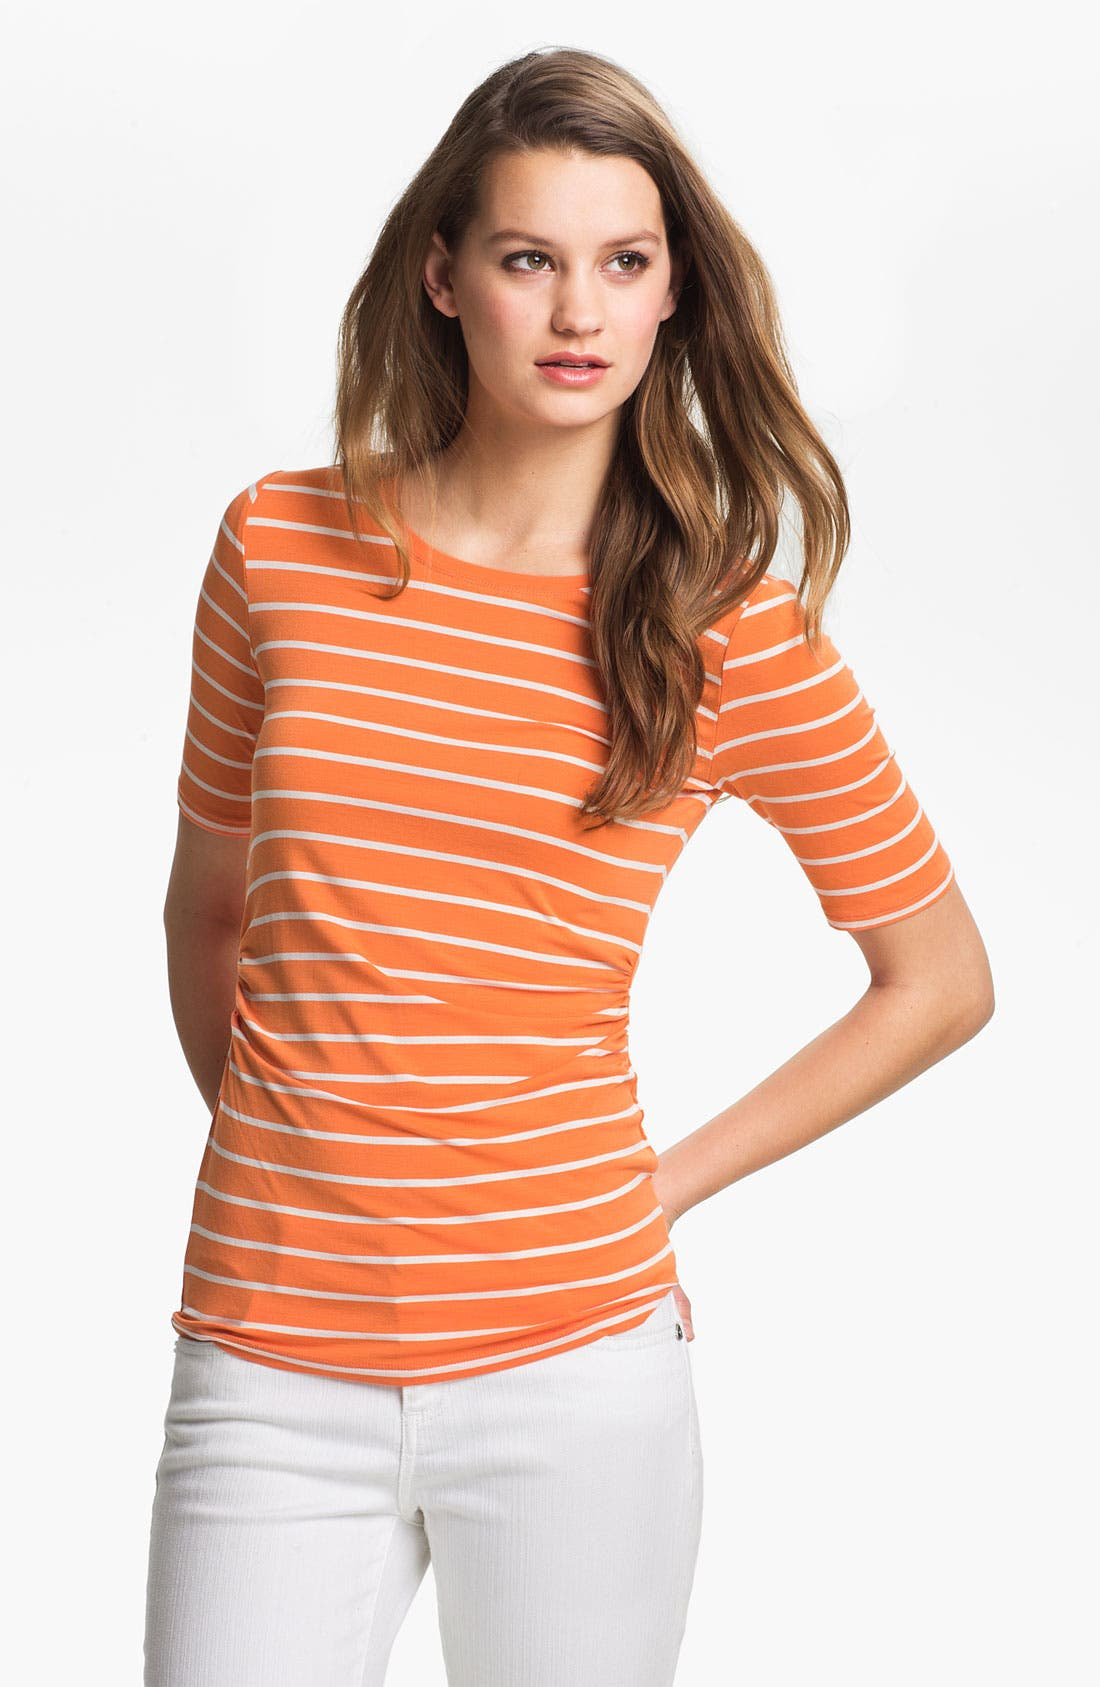 Alternate Image 1 Selected - Vince Camuto Elbow Sleeve Stripe Tee (Petite)